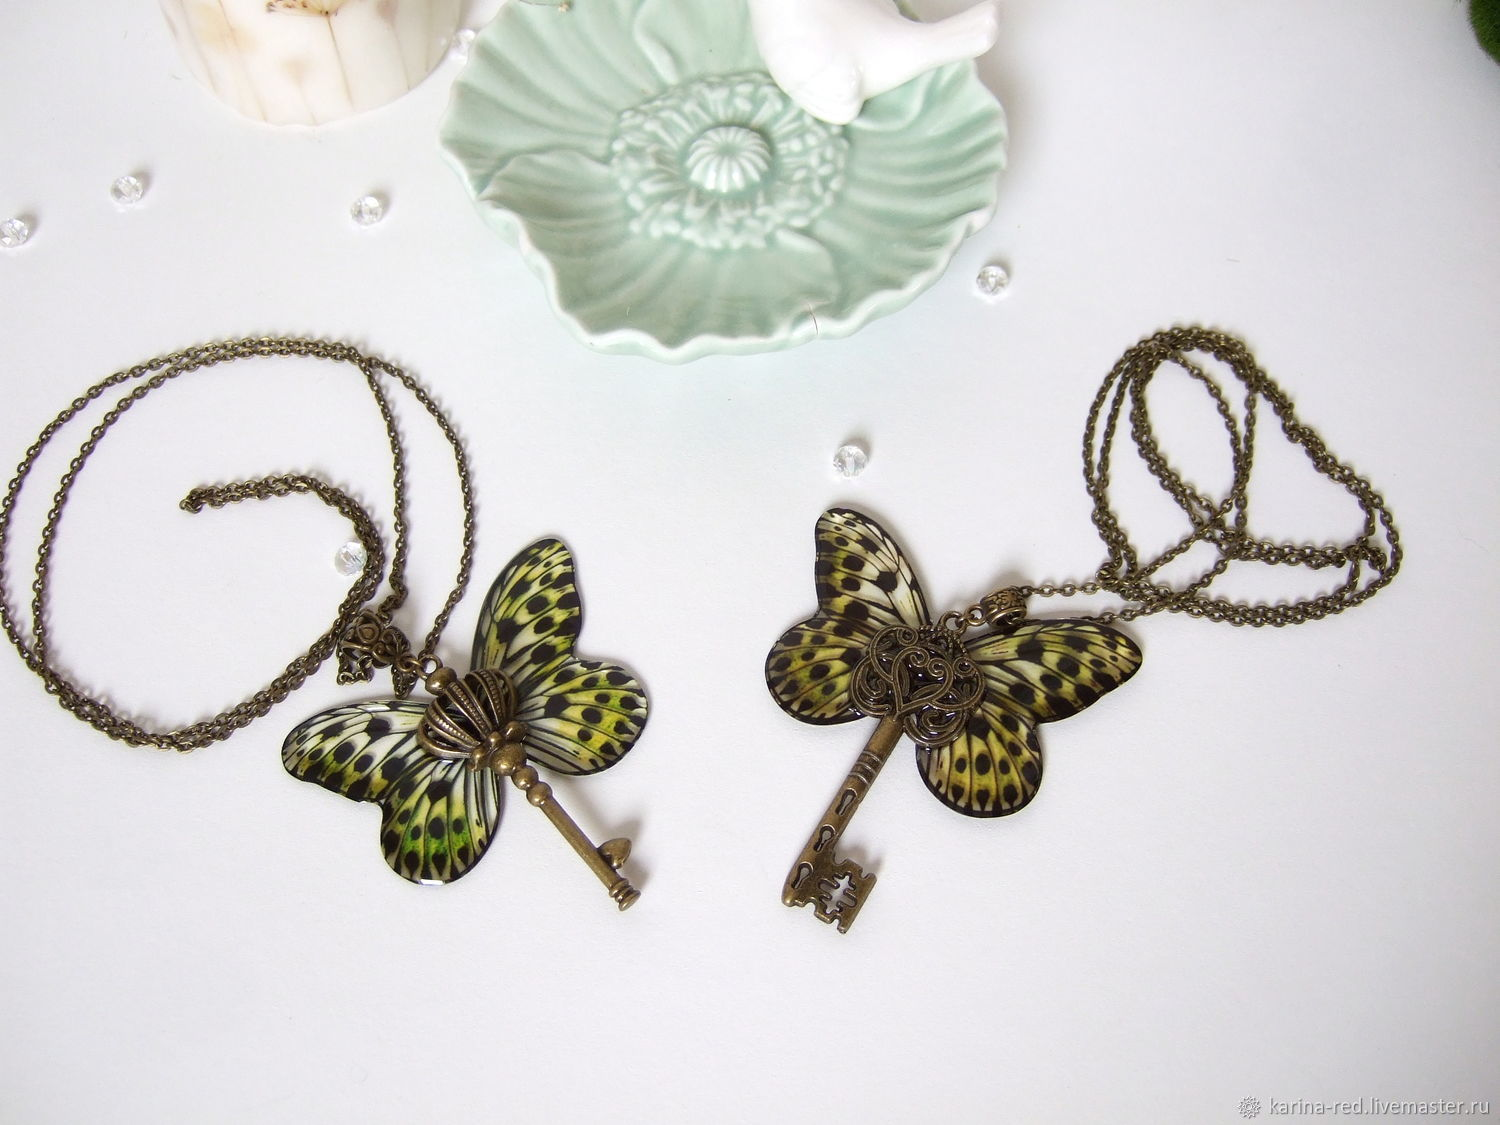 buy transparent butterfly pendant vintage jewelry exclusive jewelry handmade jewelry epoxy twin reflection of two moths